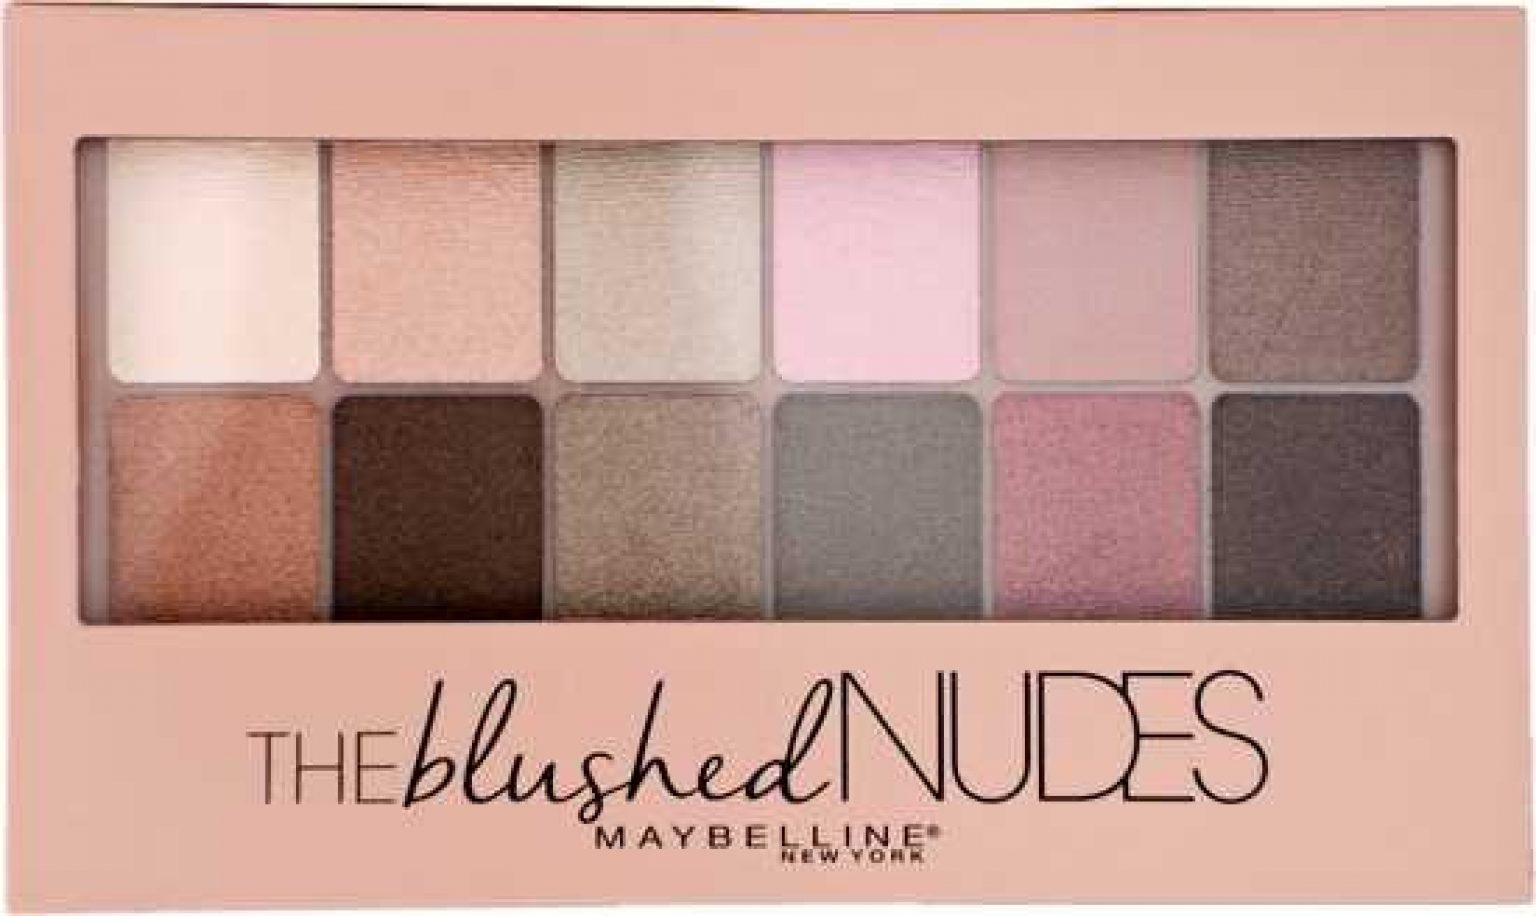 Maybelline Blushed Nude Shadow Palette for custom eye